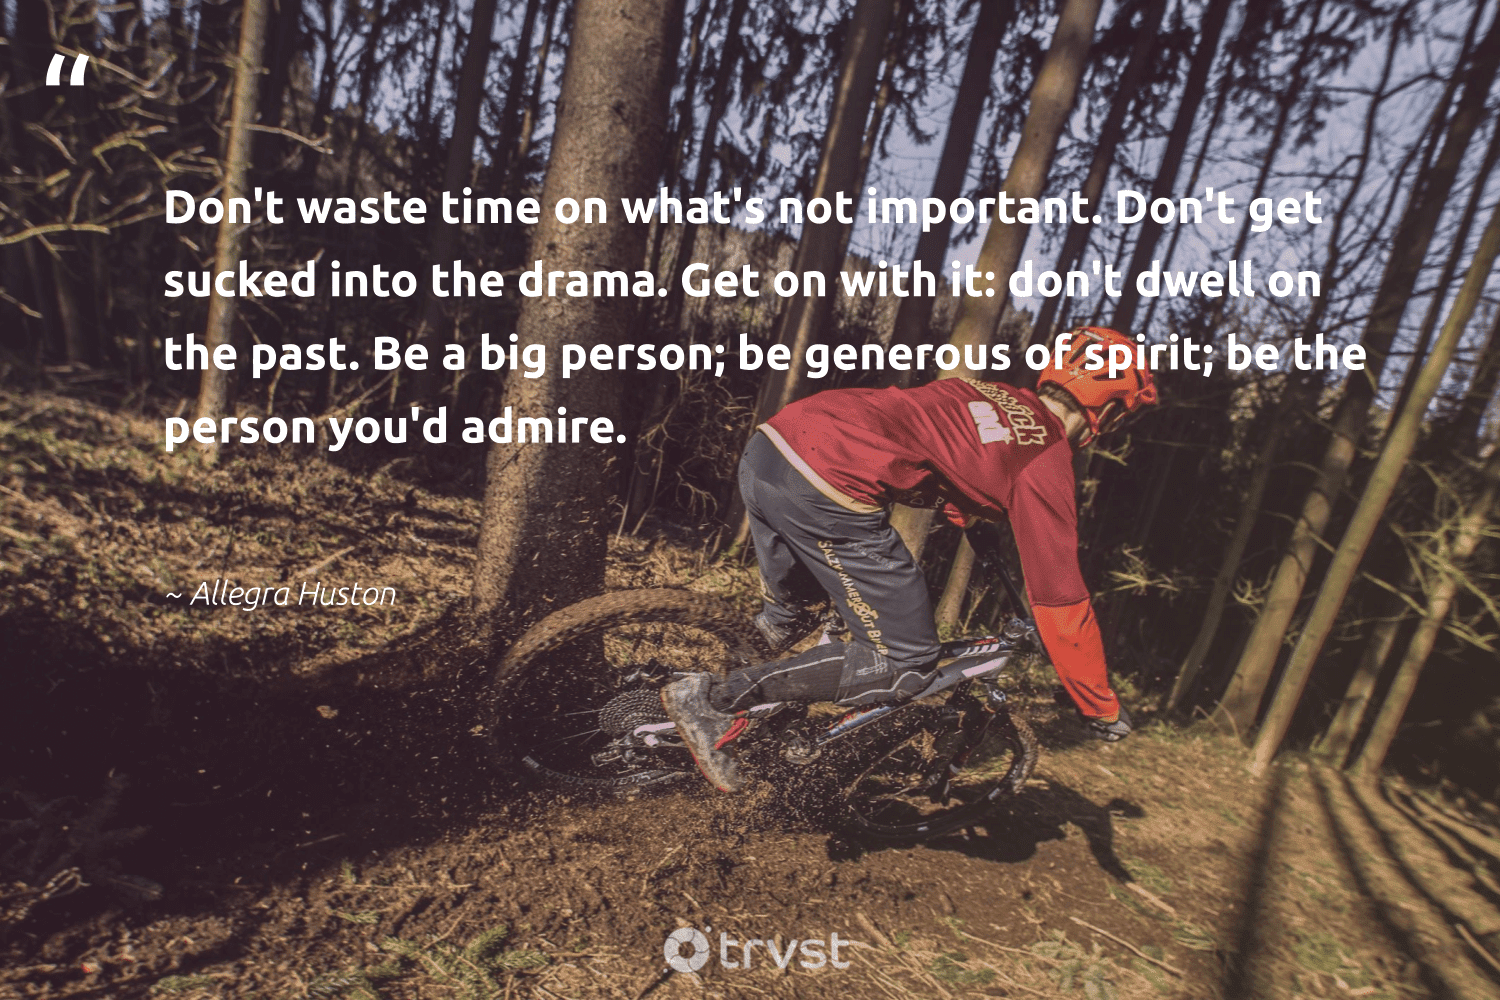 """""""Don't waste time on what's not important. Don't get sucked into the drama. Get on with it: don't dwell on the past. Be a big person; be generous of spirit; be the person you'd admire.""""  - Allegra Huston #trvst #quotes #waste #begreat #thinkgreen #togetherwecan #dosomething #changemakers #dogood #nevergiveup #gogreen #health"""